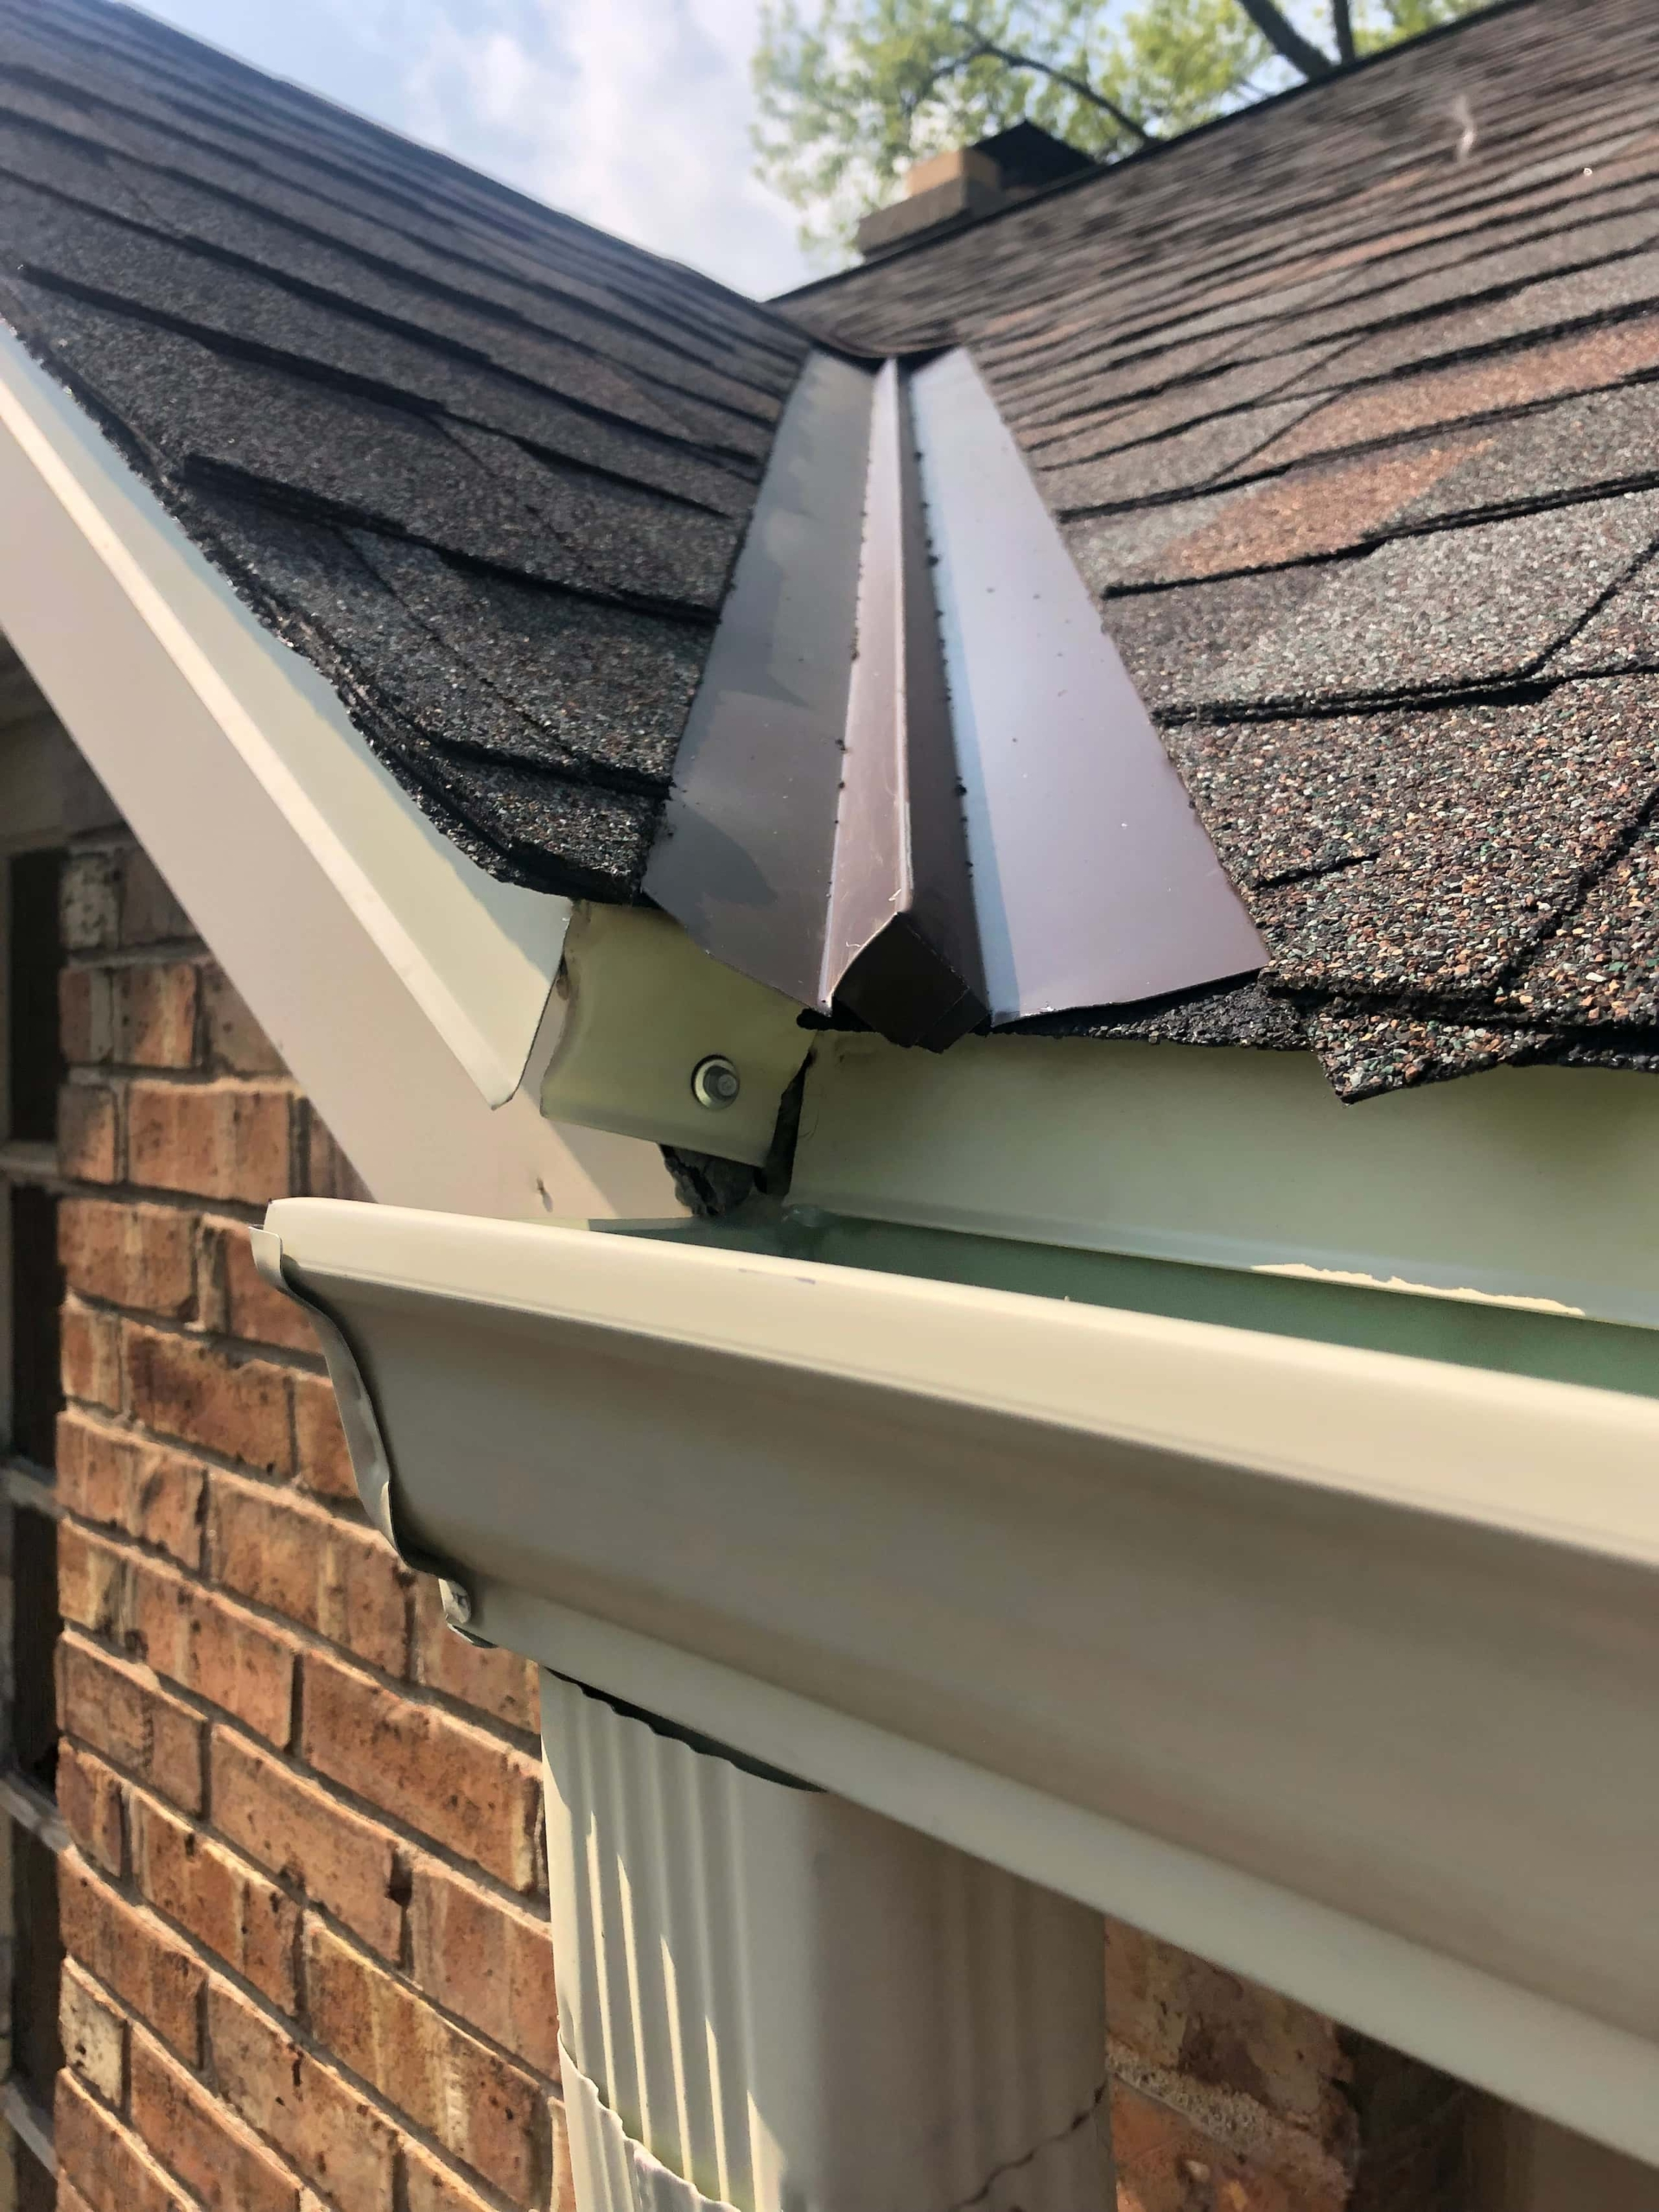 Wisconsin Roofing | Owens Corning Designer Shingles | Aged Copper | Gutters